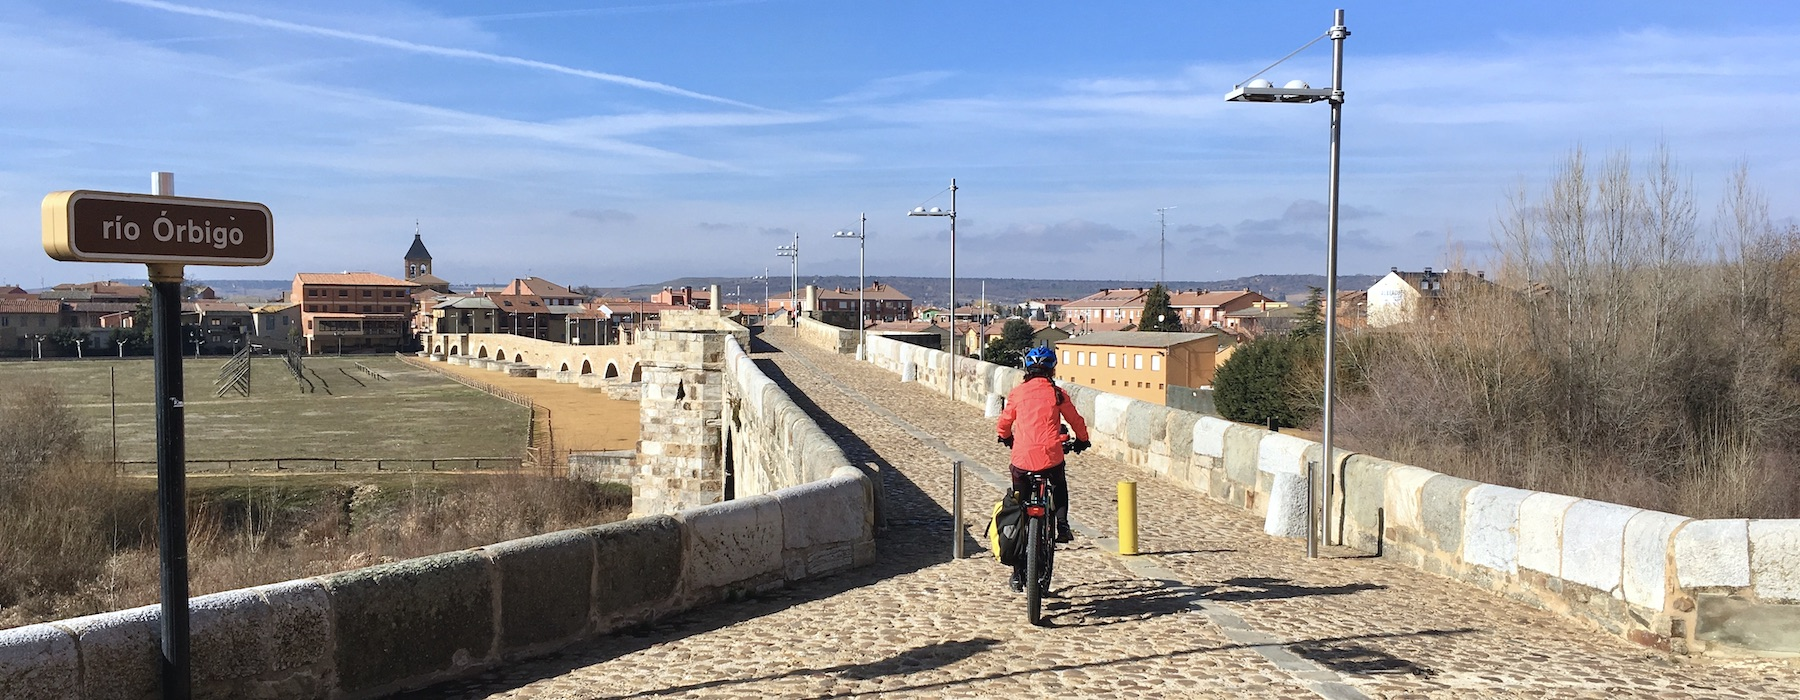 Bike Pilgrim on Orbigo Bridge in Camino Santiago